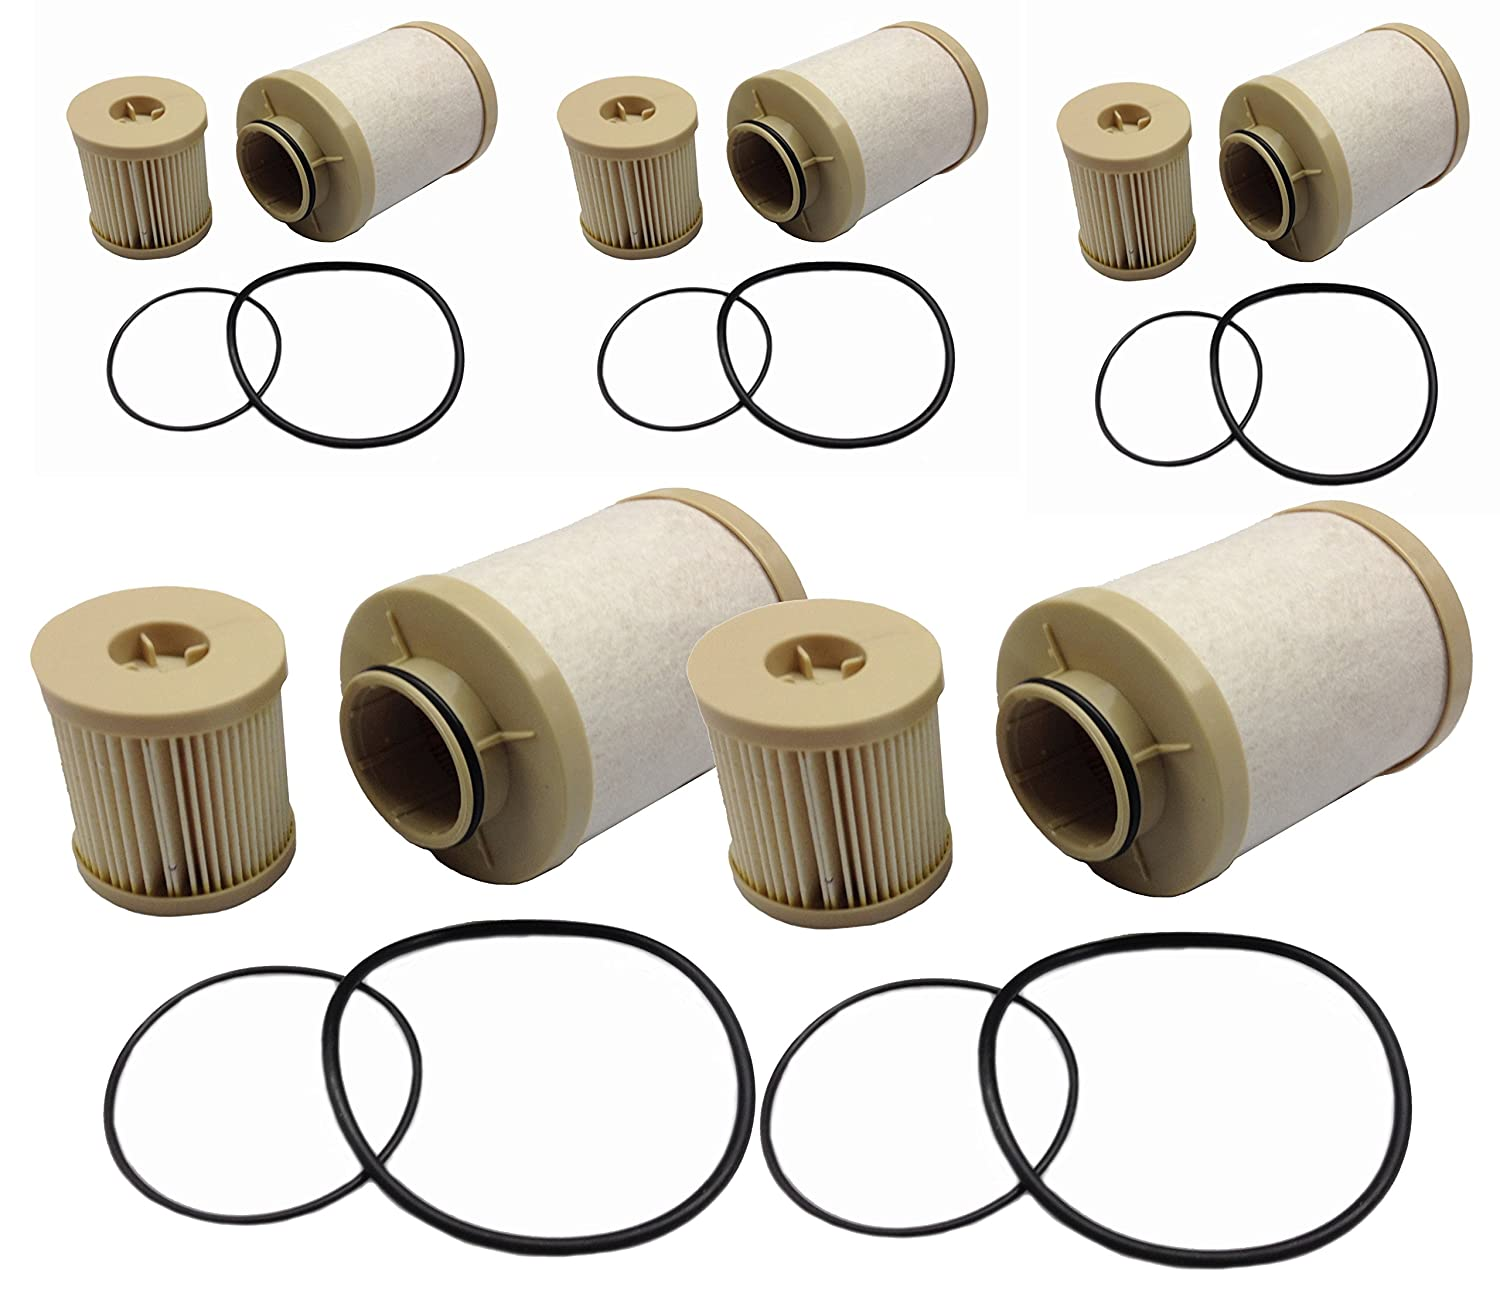 Amazon.com: Ford 6.0L 2003-2007 updated 4616 Diesel Fuel Filter 5 Pack  includes lower lifter pump filter and upper fuel bowl filter ADT-60-FD-4616  Ford F250 ...